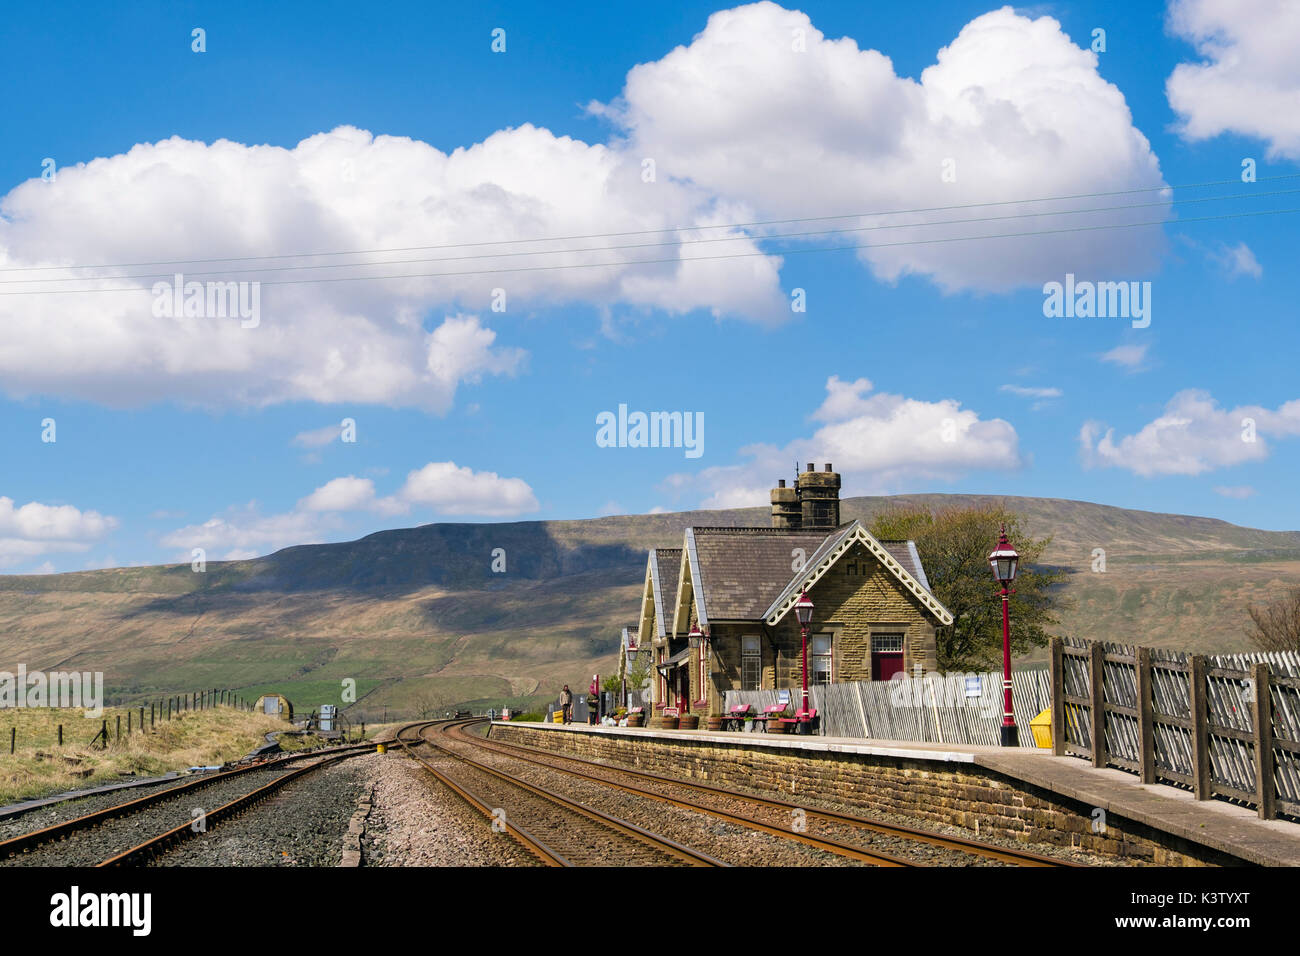 Ribblehead station on Settle to Carlise railway line with Whernside hill beyond. Ribblehead Yorkshire Dales National Park North Yorkshire England UK - Stock Image